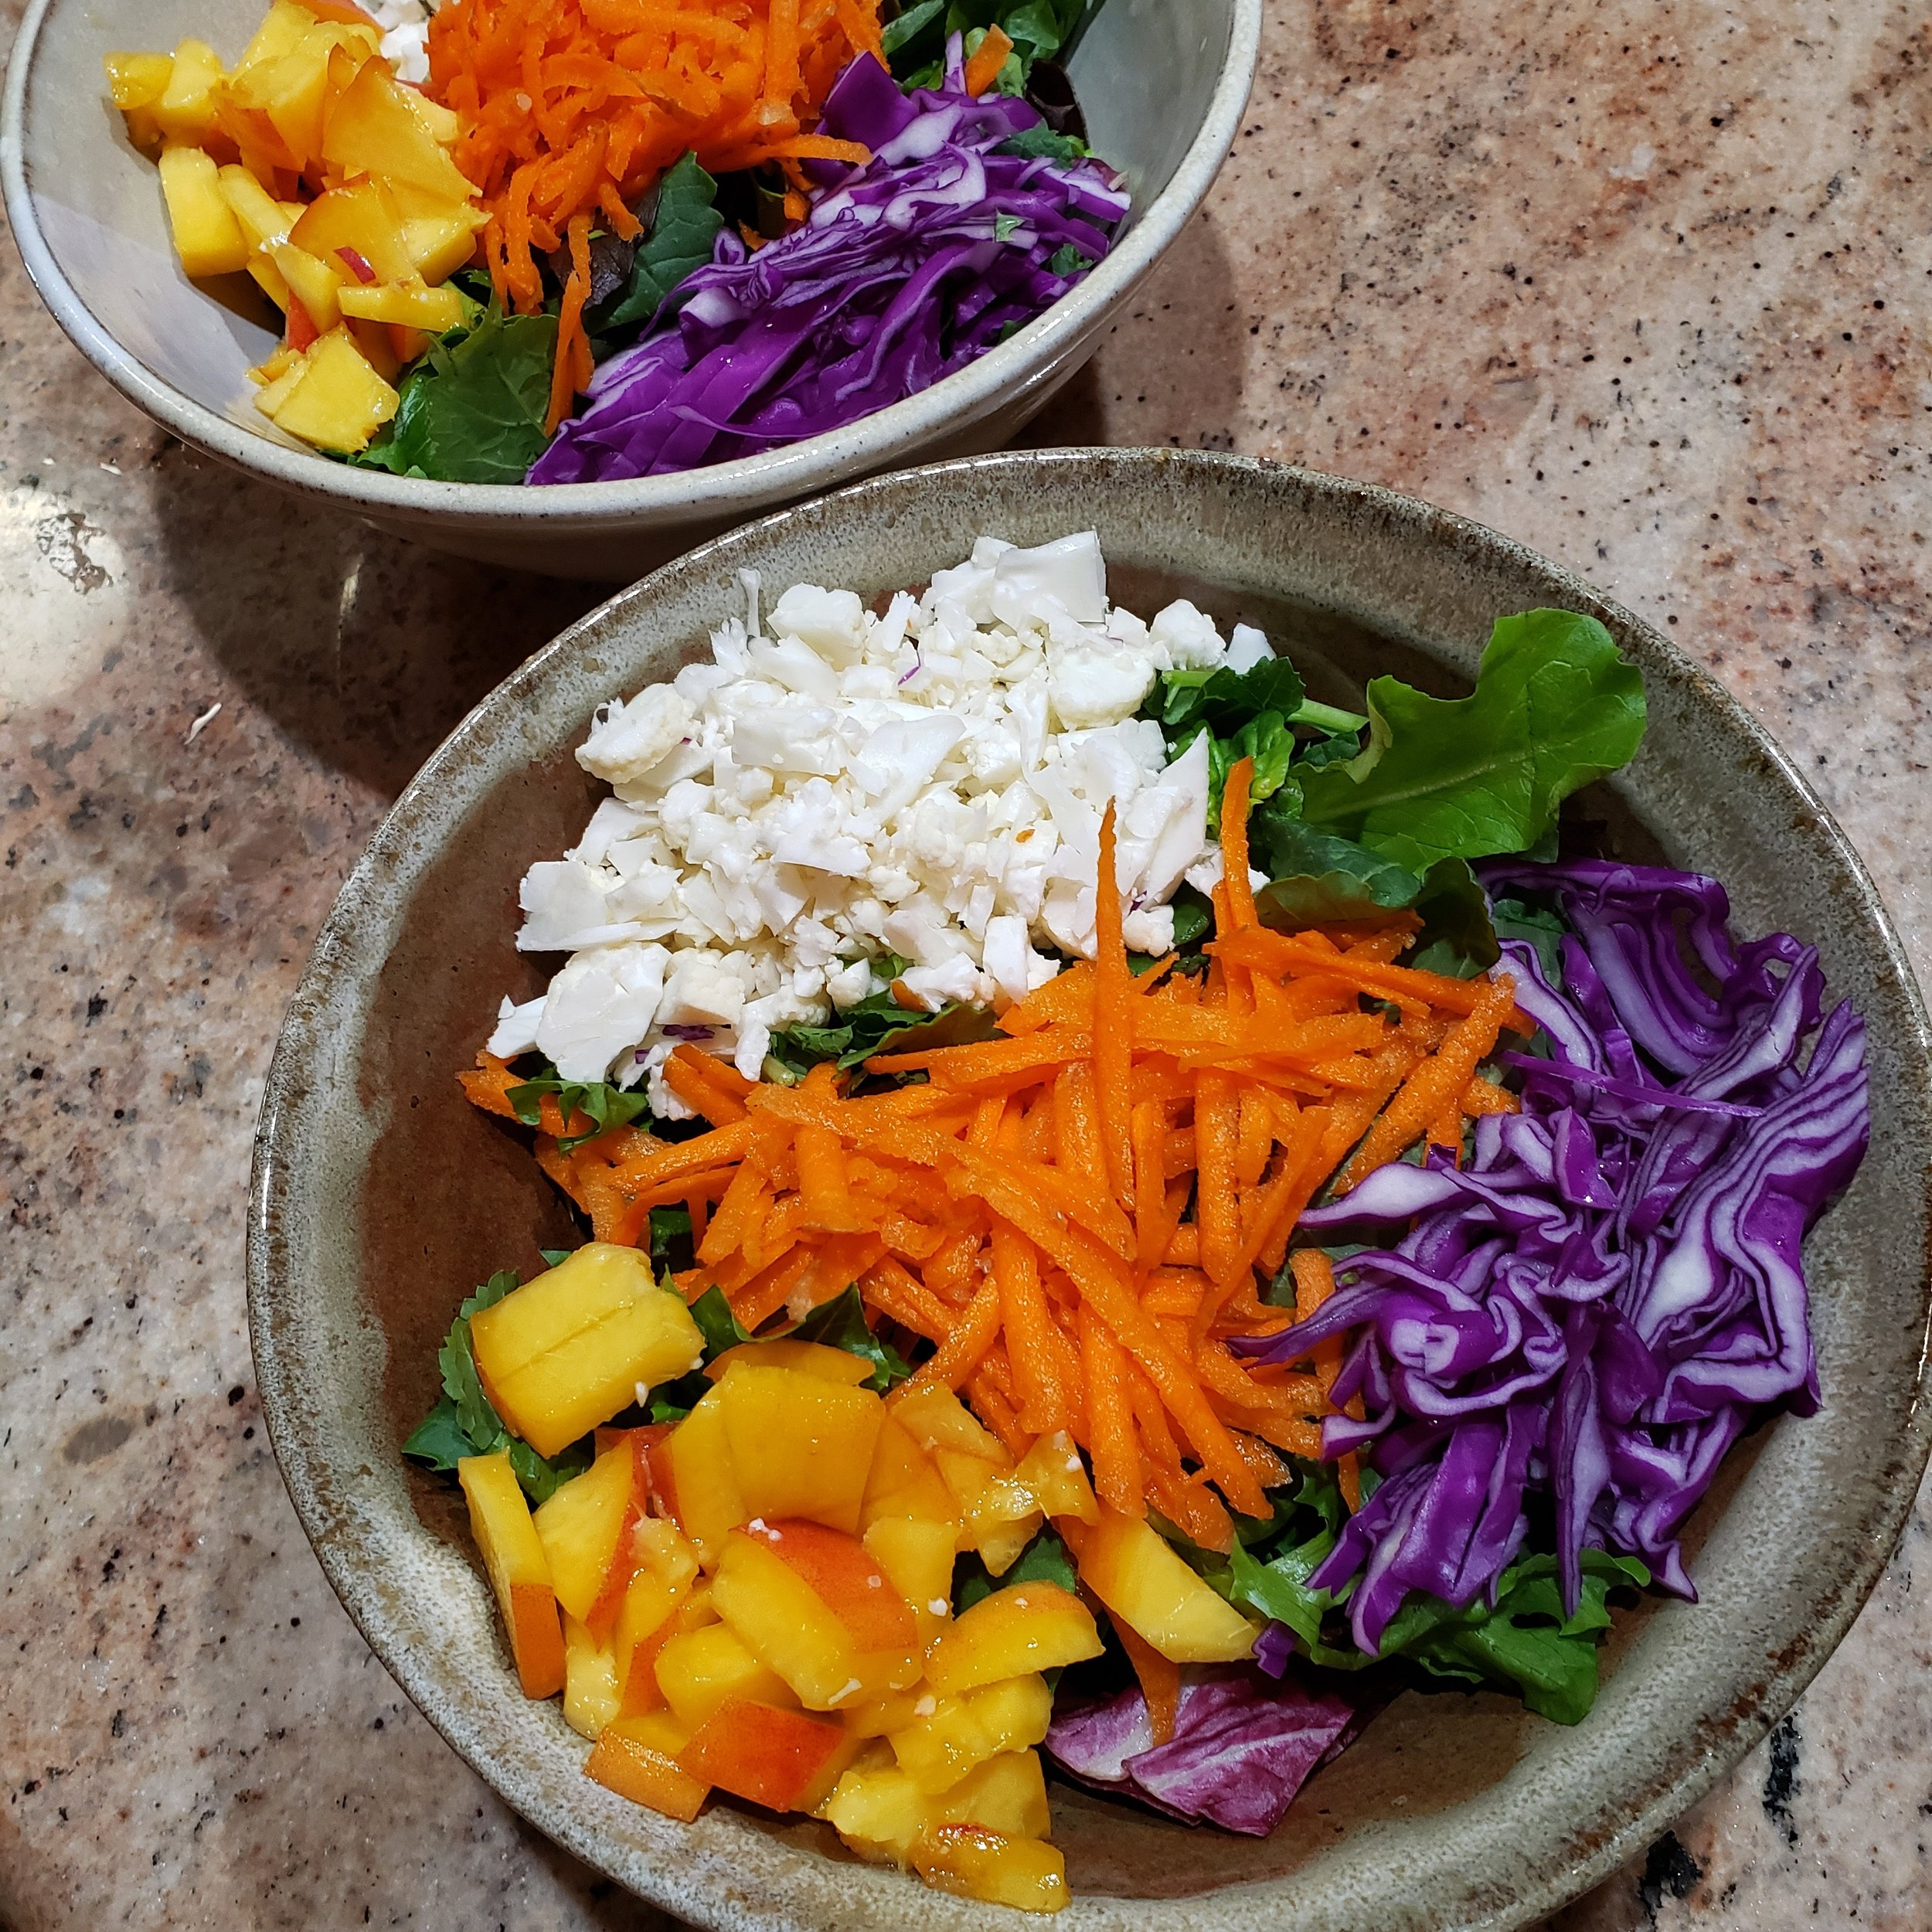 Macrobiotics is the path back to natural living in a modern world. -  Preparing whole foods with simple ingredients to balance the stress of everyday life cleanses and regenerates our bodies and our minds. Whole foods relax the internal organs creating a calmness about oneself. You may not be able to control outside stressors, but your reactions can be from a state of balance and groundedness. This is the effect of a macrobiotic diet. Macrobiotic foods clear, repairs and aligns your sublime energies such as meridians, chakras, and the aura. Alignment comes naturally. Many have never felt this state of being as unworthiness and fatigue feel normal. Macrobiotics changes that to feeling alive, joyful, and connected to something real. Eating is a mechanism to connect you to your food. Food becomes YOU! That's amazing. Just think that at one time your bones and organs were once on your plate! Connecting to abused factory animals brings about a connection of aggression. The emotions of that animal are ingested in the stress hormones that flooded the meat. Eating grains and vegetables connects you to the glory of the world that is here for all of us to enjoy-through nature. Eating in a macrobiotic manner also connects you to each other. This builds strong families and communities. Imagine if everyone ate this way. We would experience the promise of one peaceful world which has been spoken by my teacher Michio Kushi.